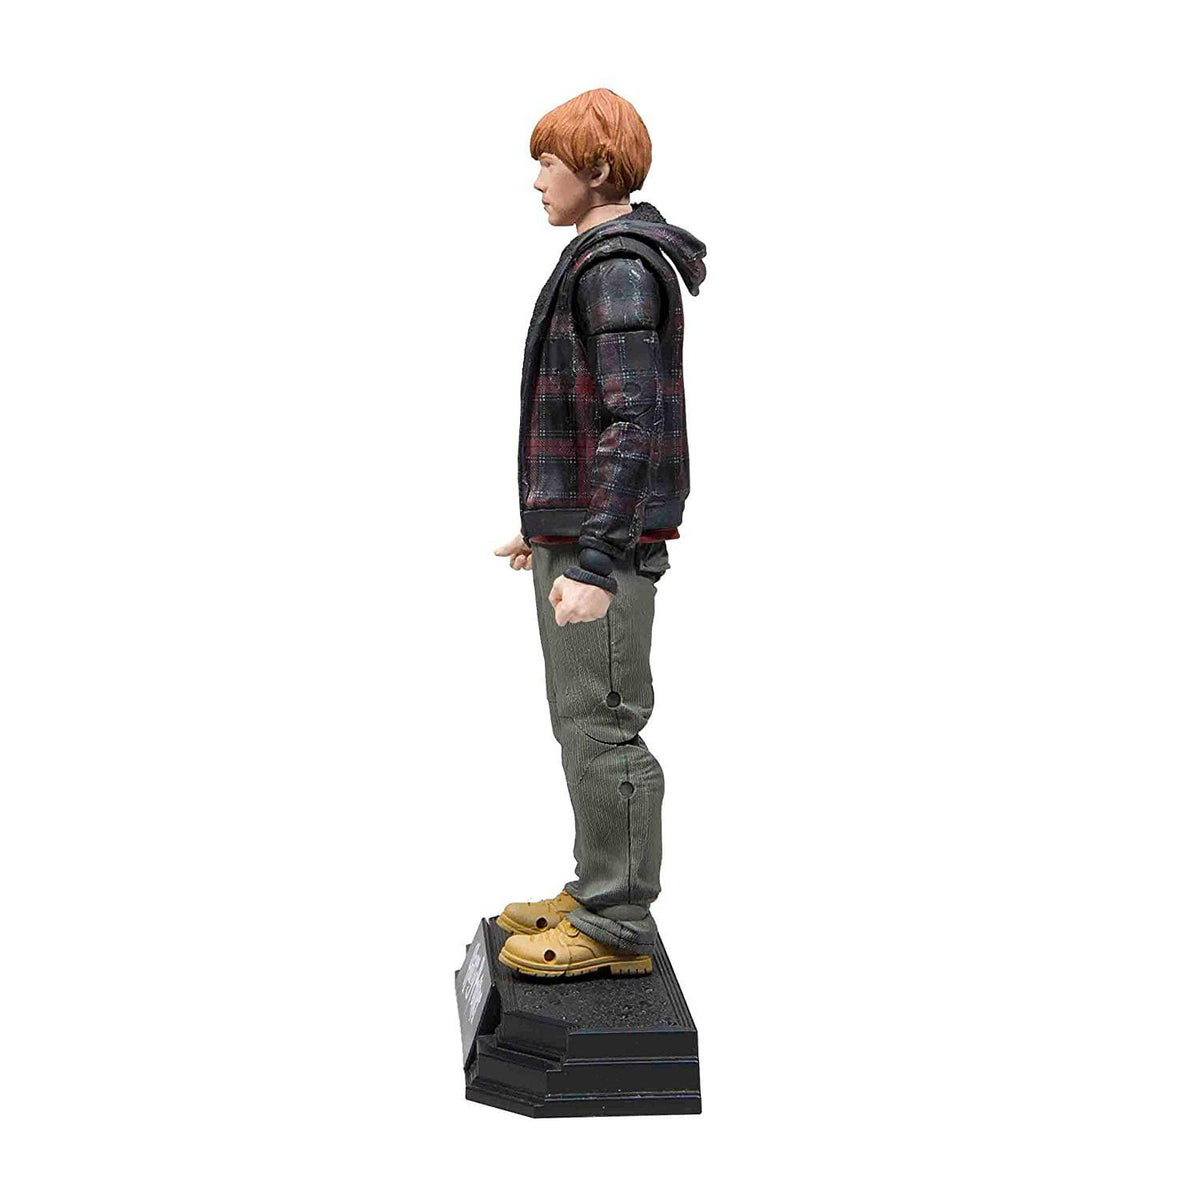 Harry Potter 7 Inch Action Figure | Deathly Hallows Part 2 Ron Weasley